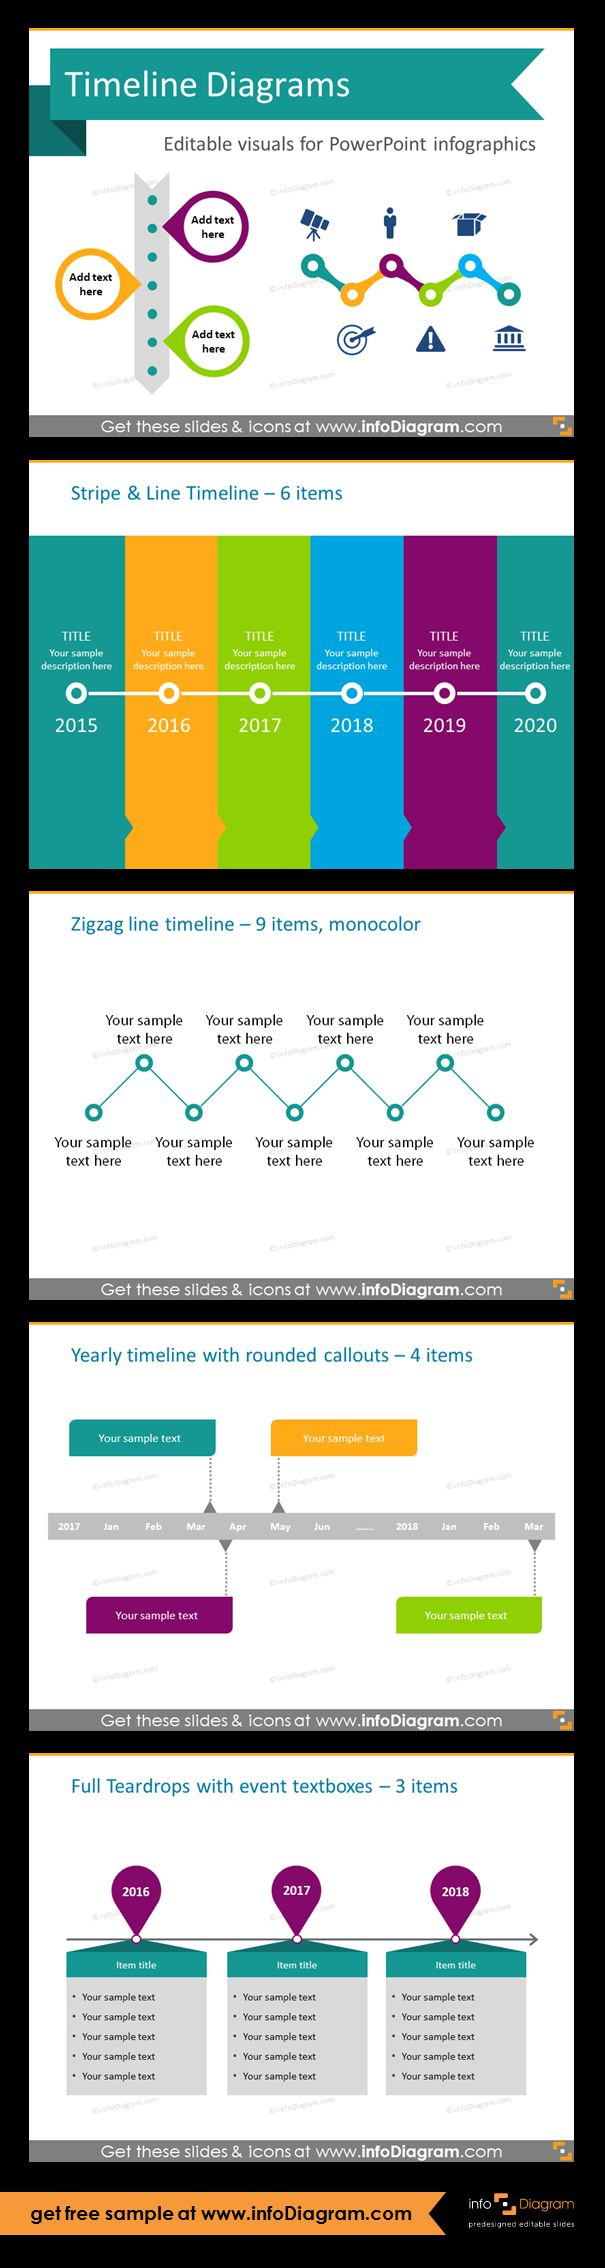 Template slides for Timeline diagrams and Time infographics. Editable PowerPoint graphics for showing history, agenda, linear process flow charts, project timelines, planning phases and roadmaps by modern infographics. Stripe and line, zigzag line, yearly and full teardrops style timelines. All icons and lists are fully editable, so you can adapt colors to you brand identity.